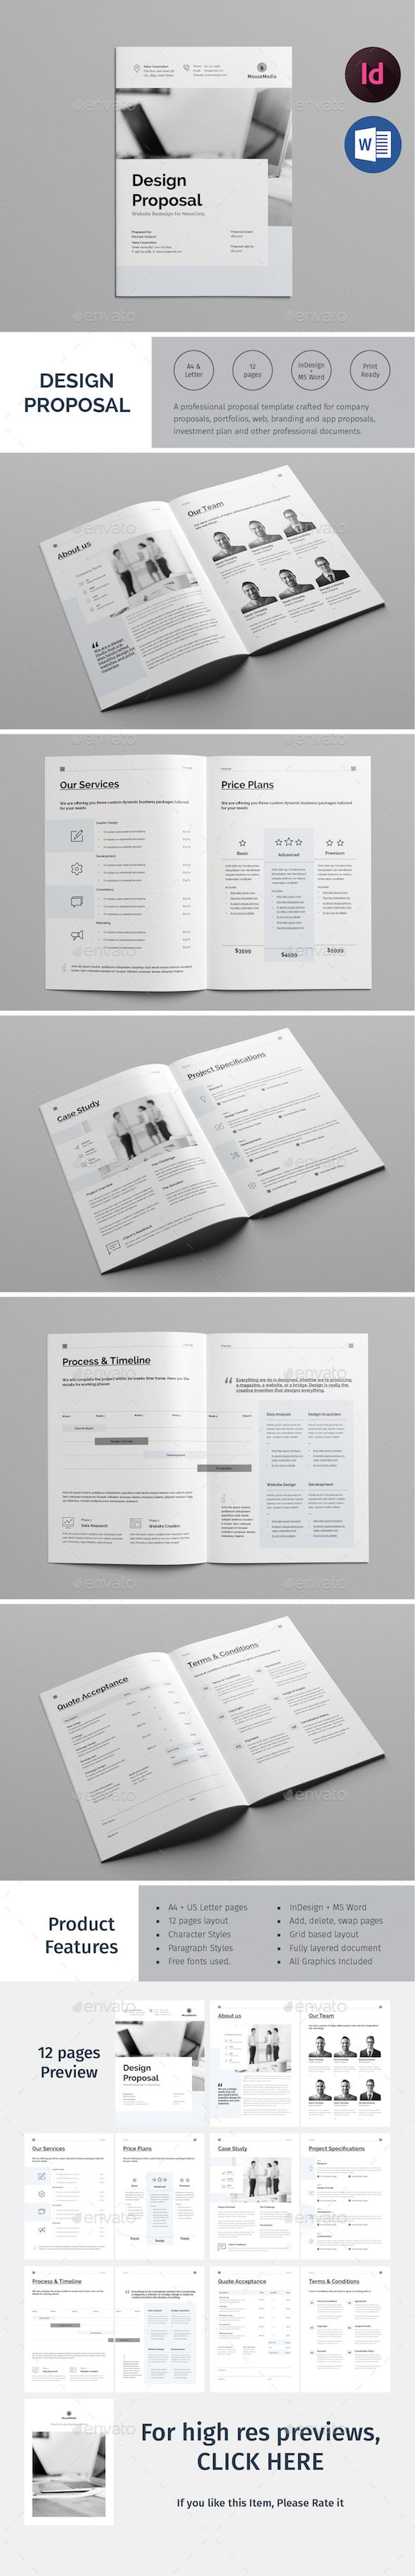 Design Proposal Brochure Template InDesign INDD - 12 Pages - A4 and ...